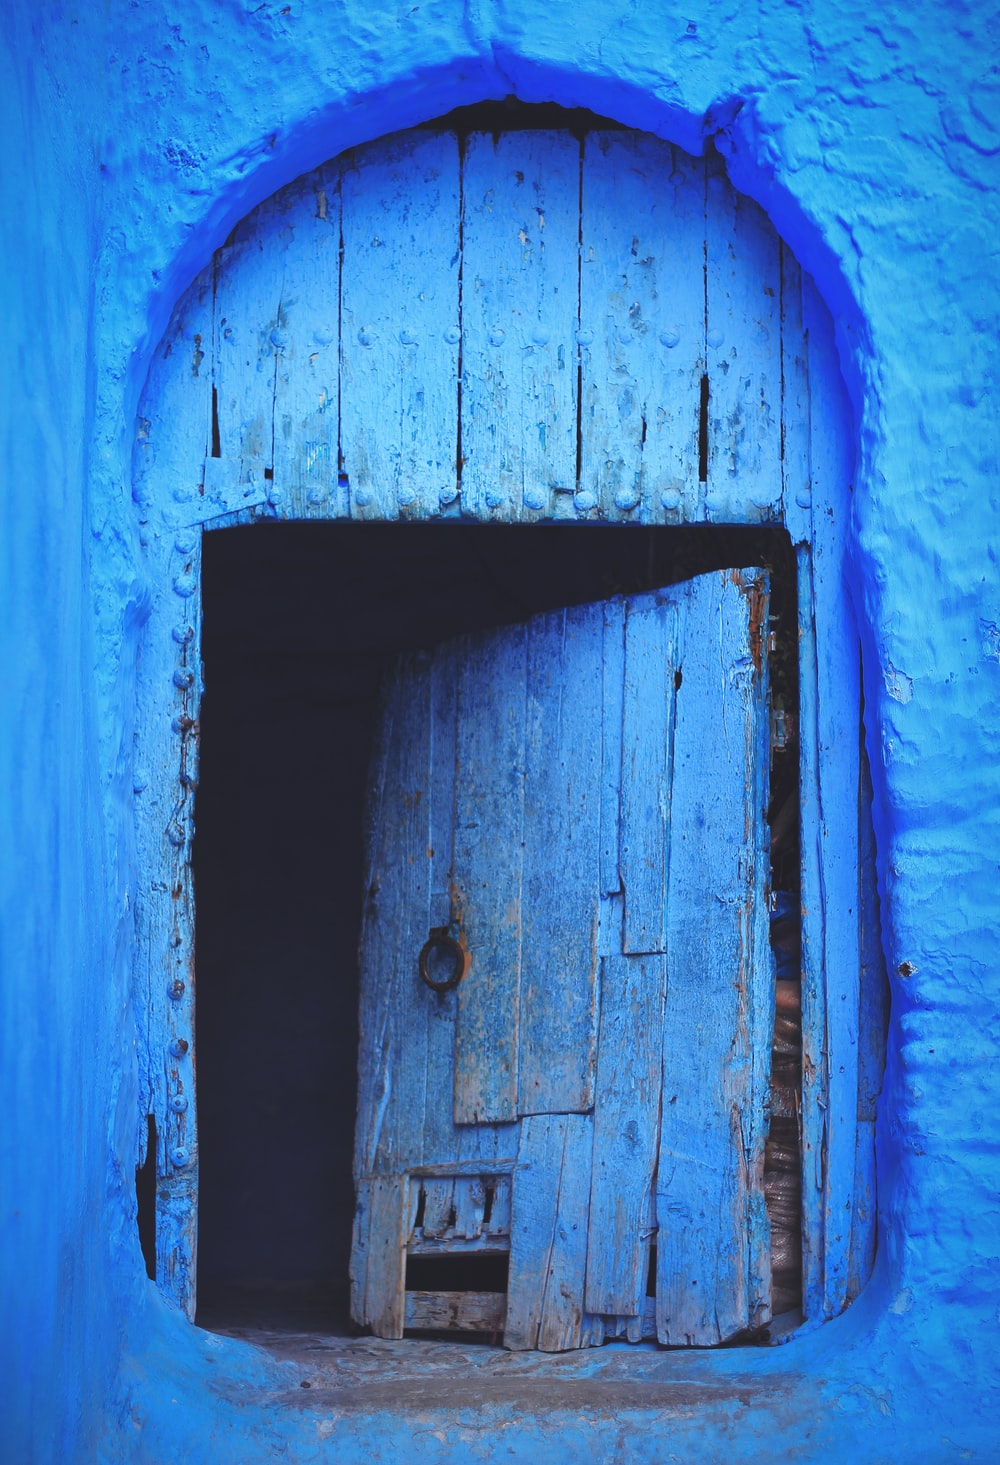 low light photography of blue wooden door